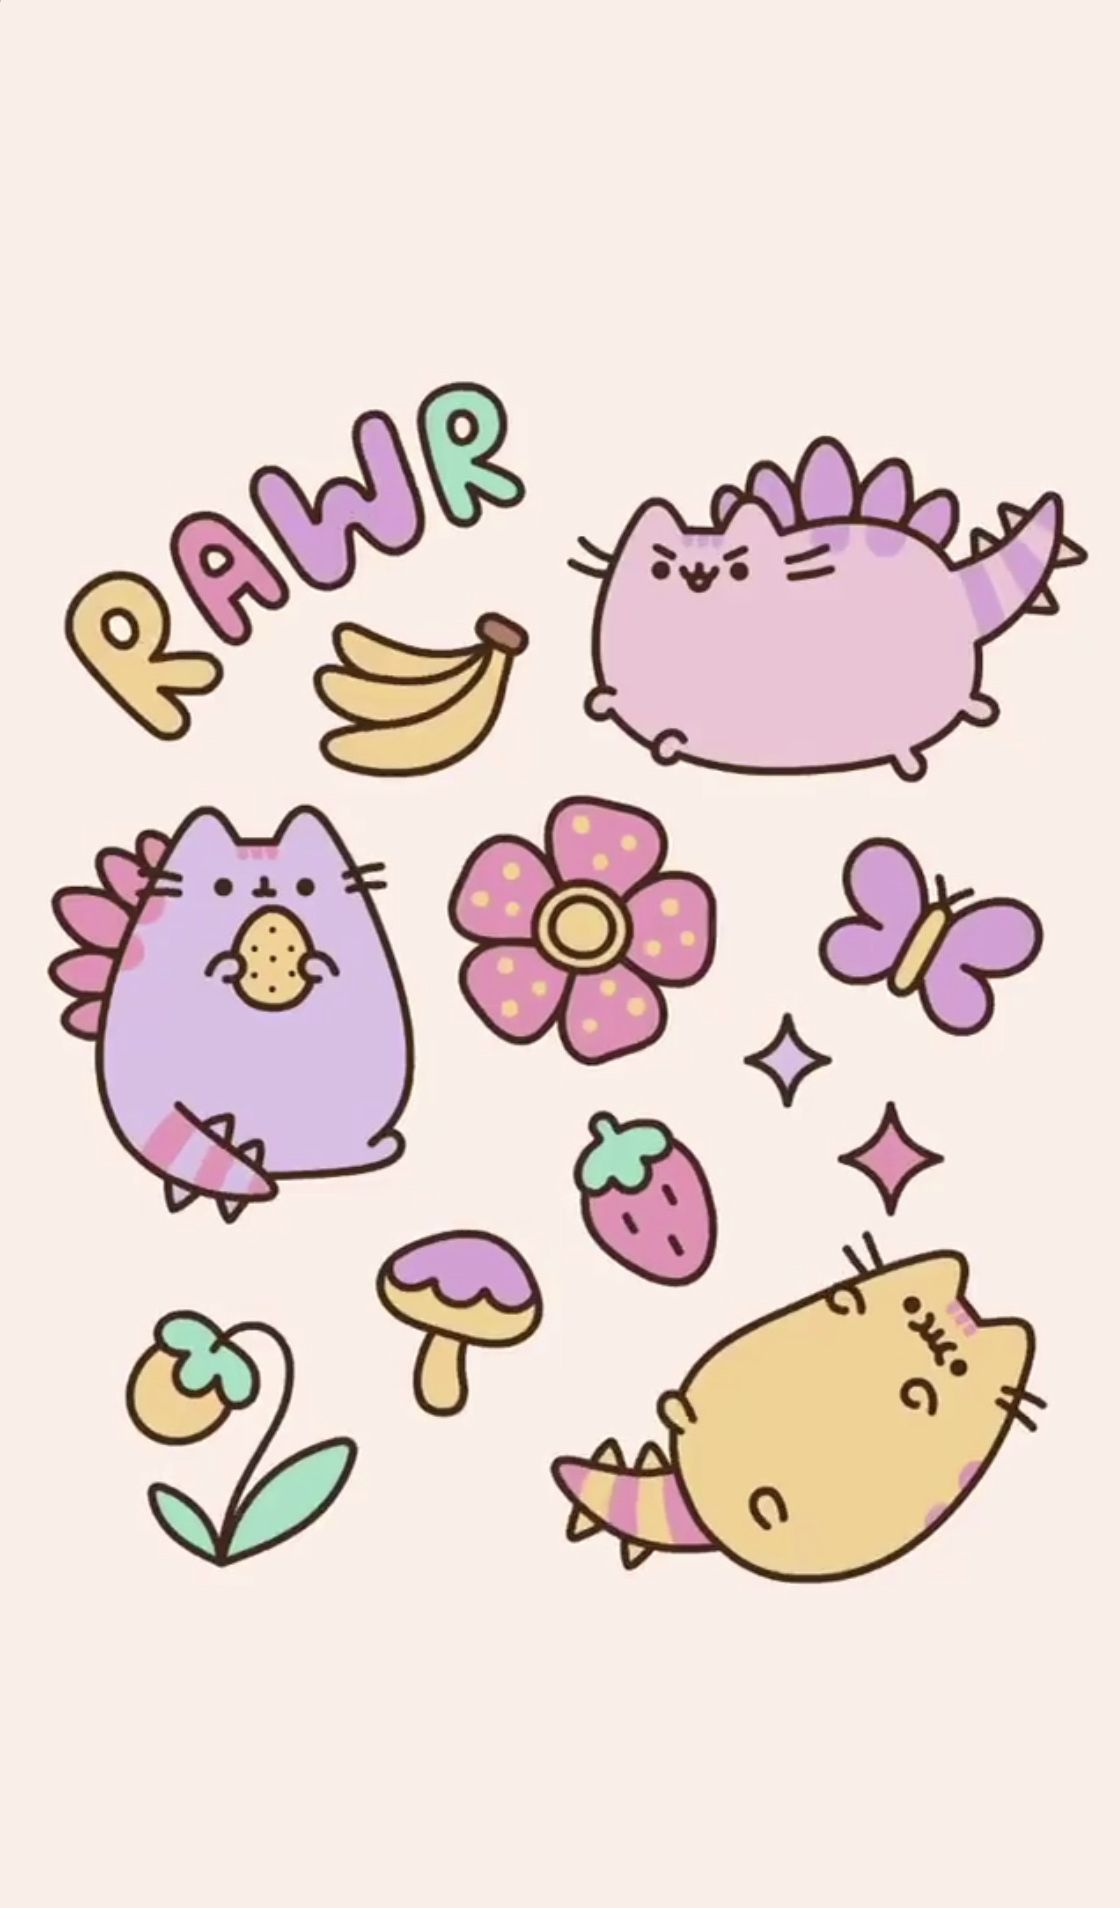 Pusheen Dinosaur Wallpaper Cat Wallpaper Pusheen Cute Dinosaur Wallpaper